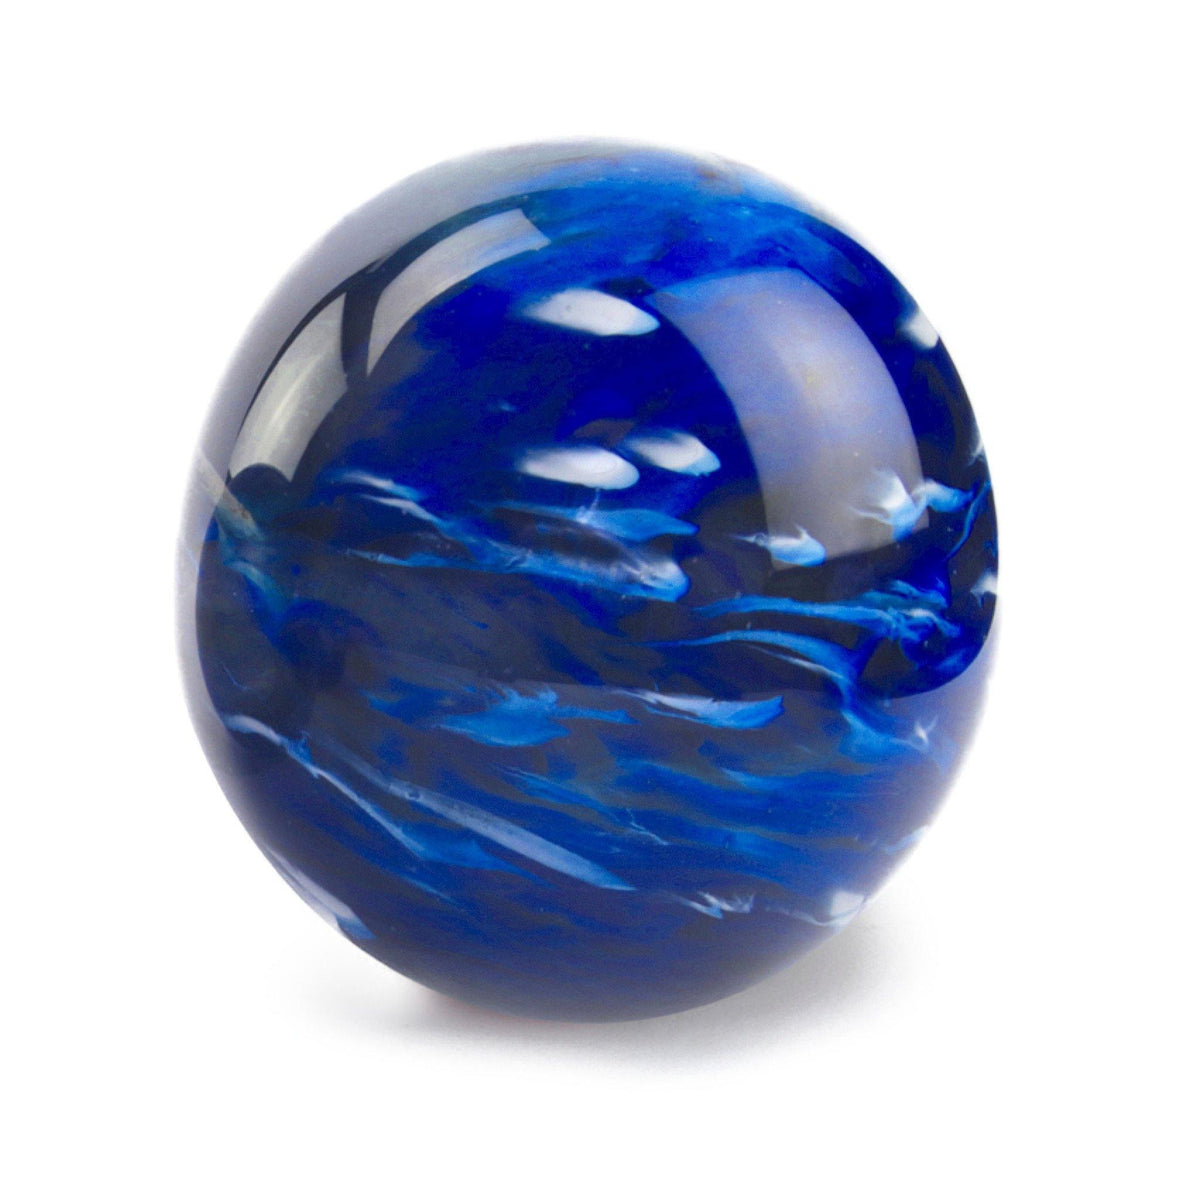 Malton Marble Blue Glass Cremation Ashes Urn - Urns UK